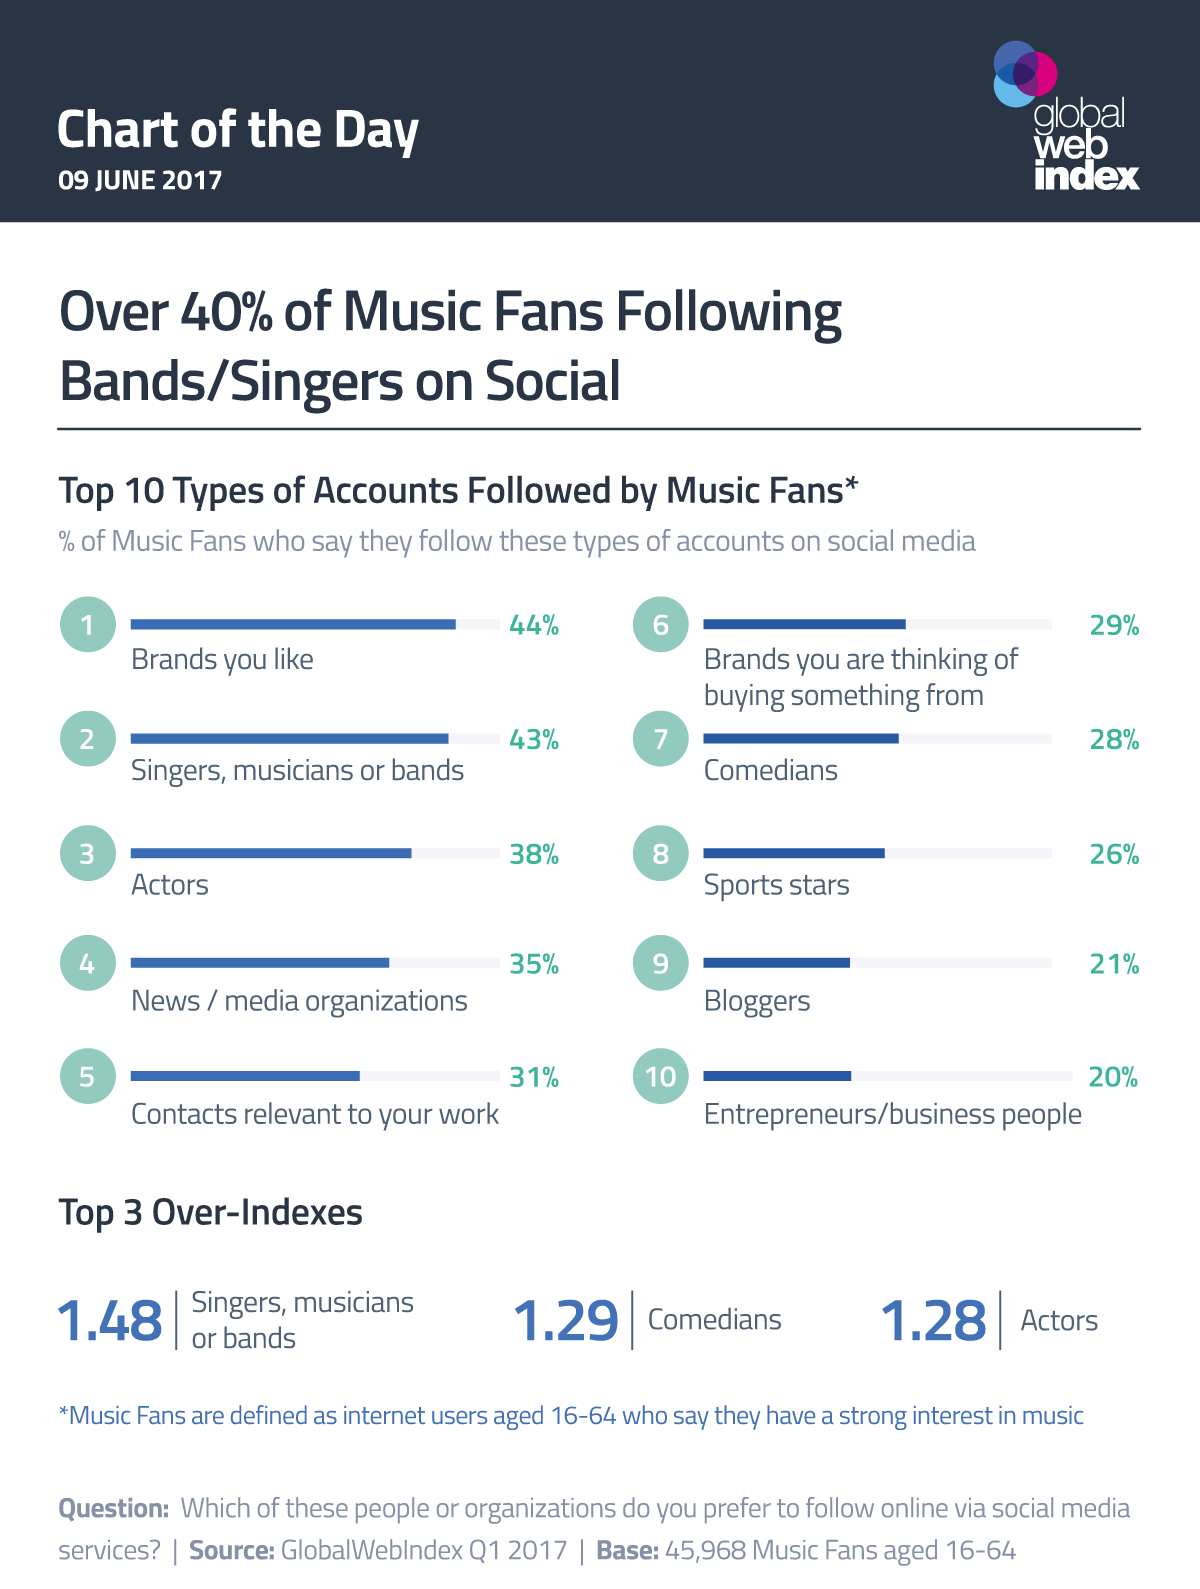 Over 40% of Music Fans Following Bands/Singers on Social